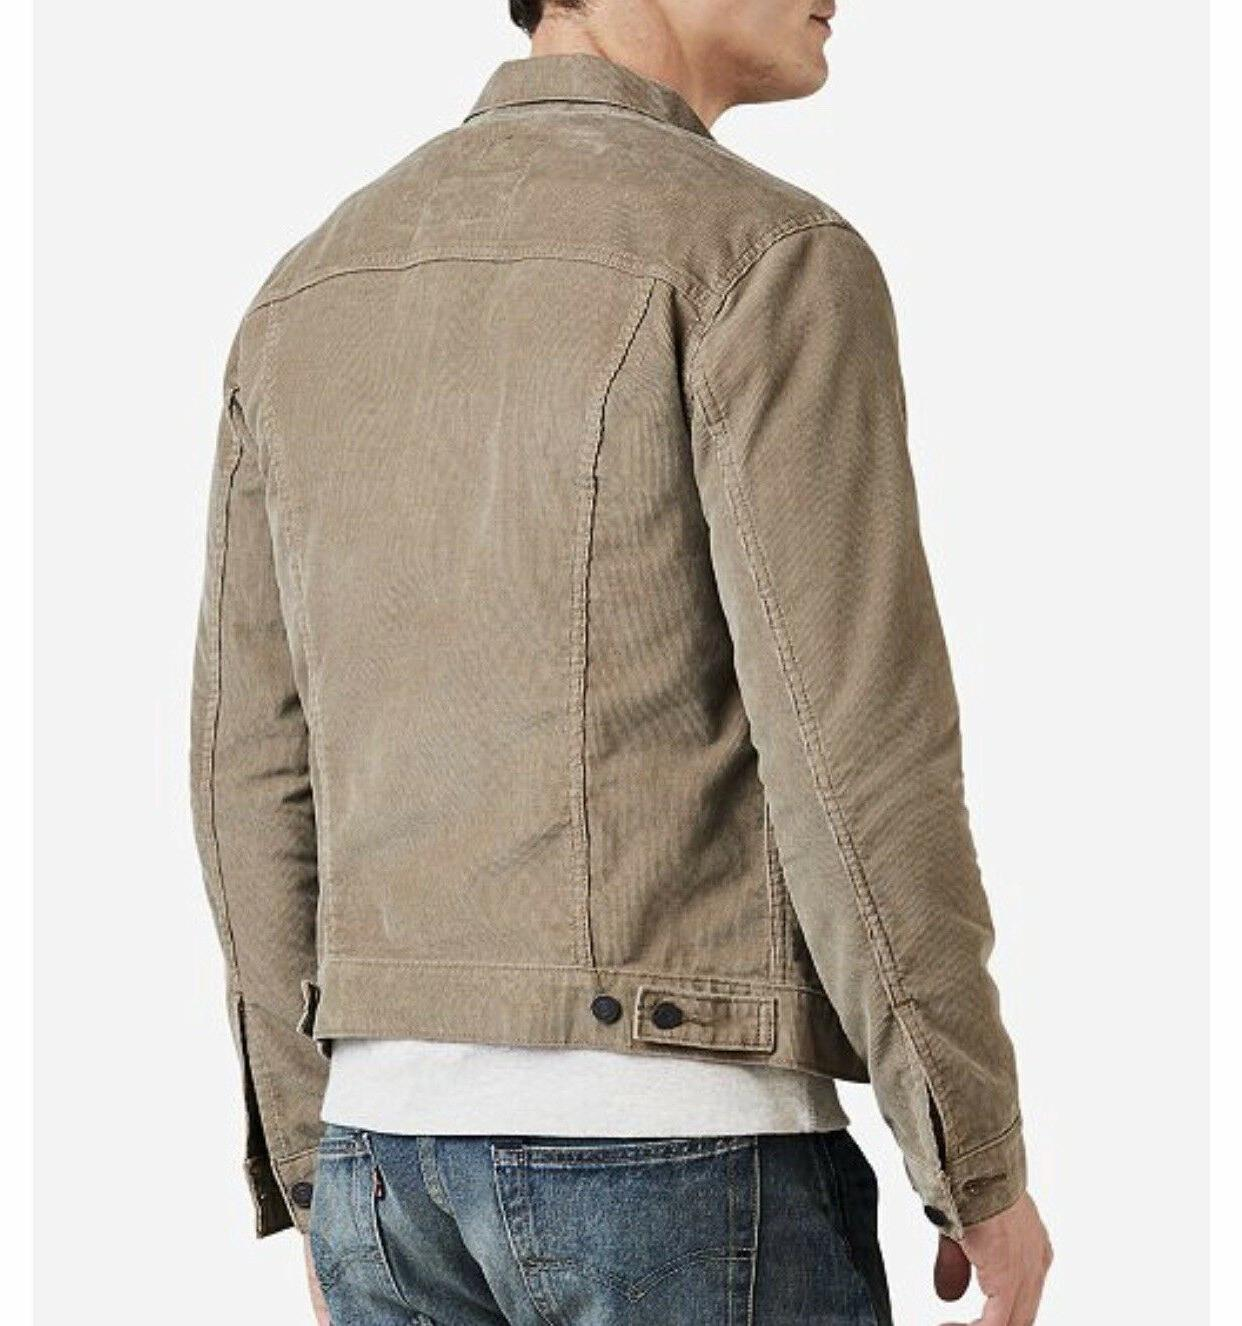 NWT LEVIS 72334 $89.50